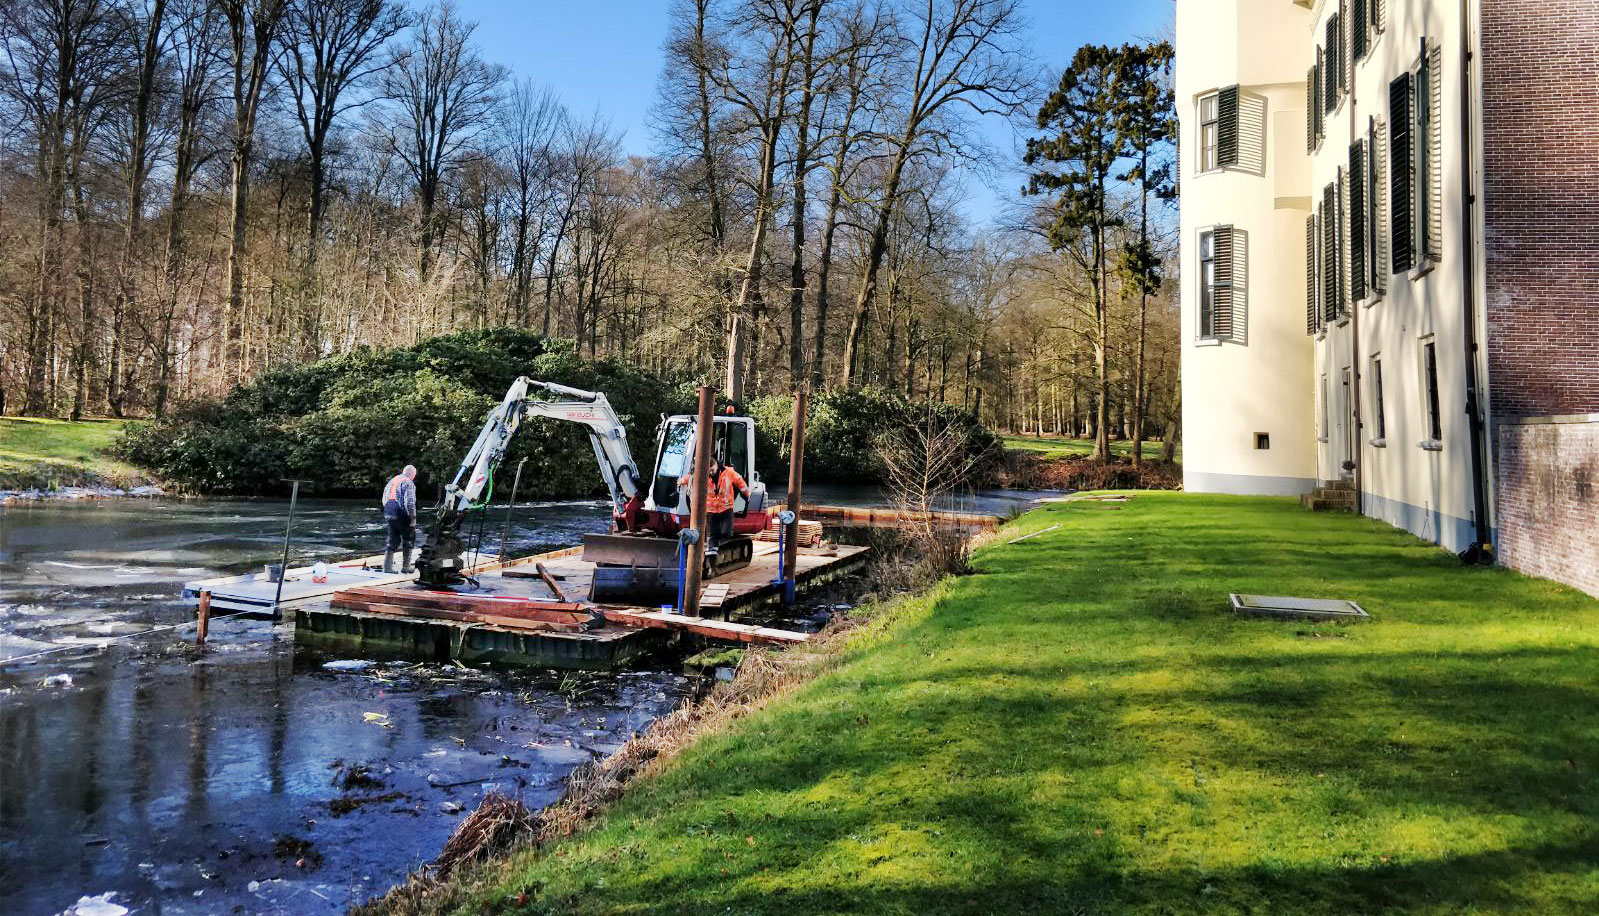 Constructed wetland in Amersfoort en Doorn